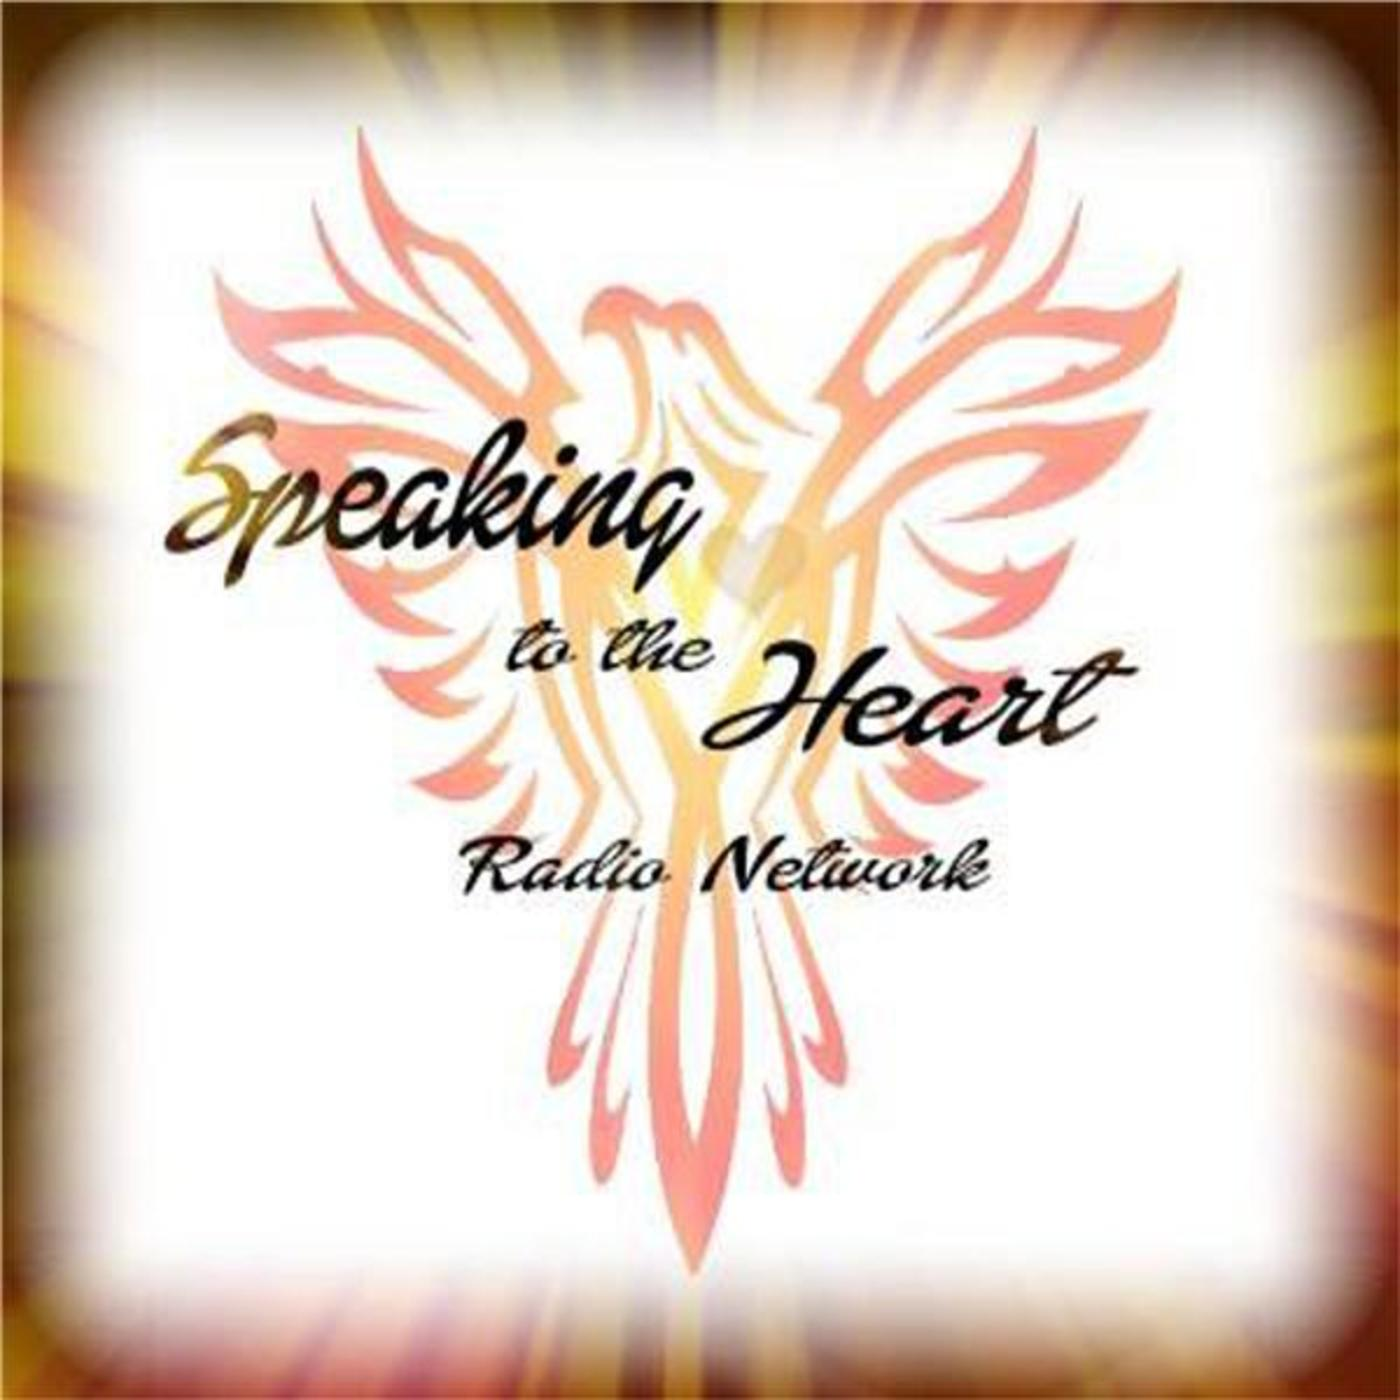 Speaking to the Heart Radio Network